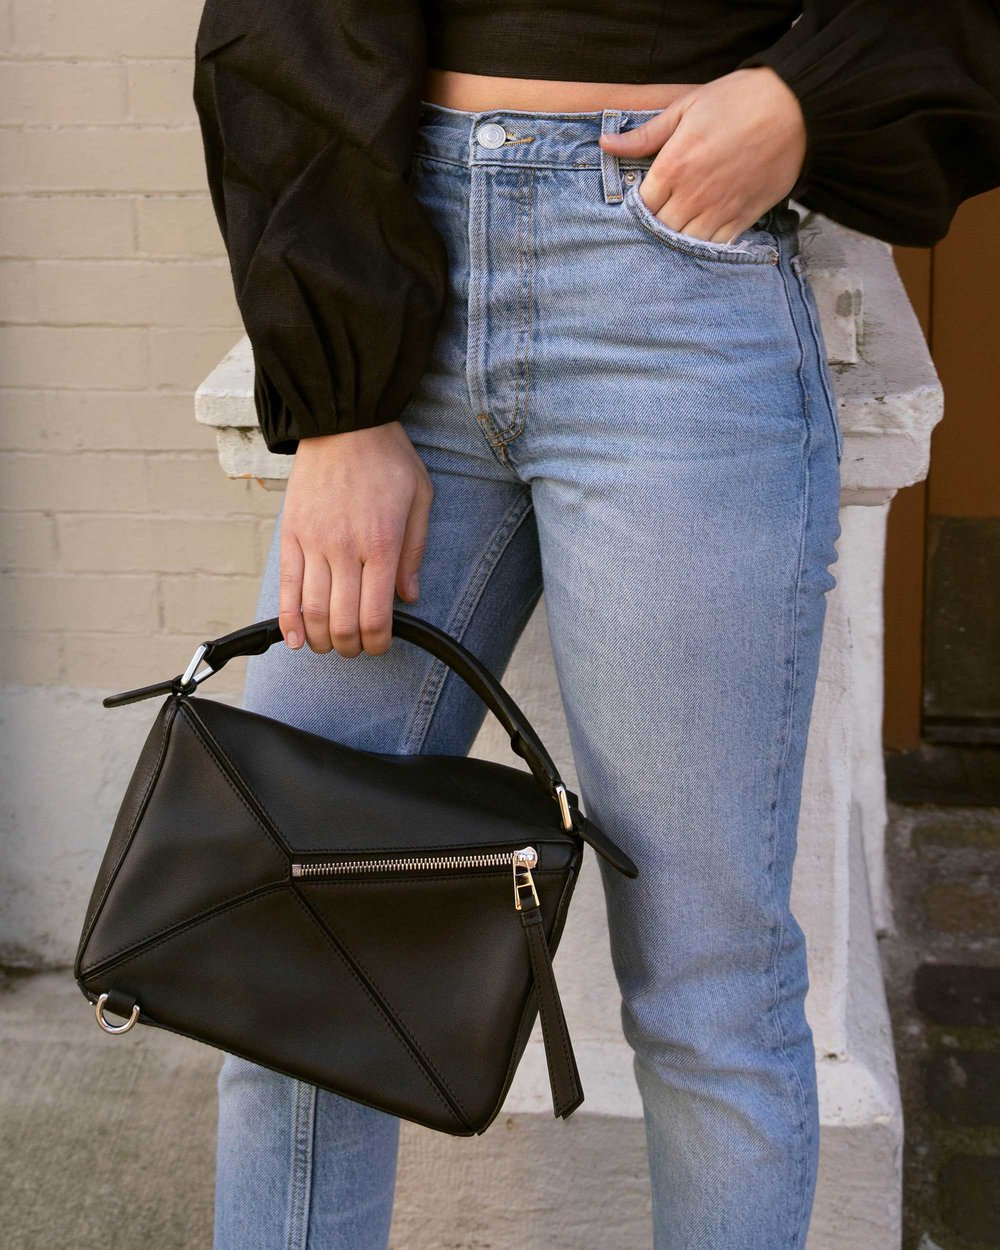 Sarah Butler of Sarah Styles Seattle wears Mara Hoffman Moon Crop Top with Gathered puff sleeves in black and Loewe Small Puzzle Shoulder Bag  | @sarahchristine, Seattle Blogger12.jpg